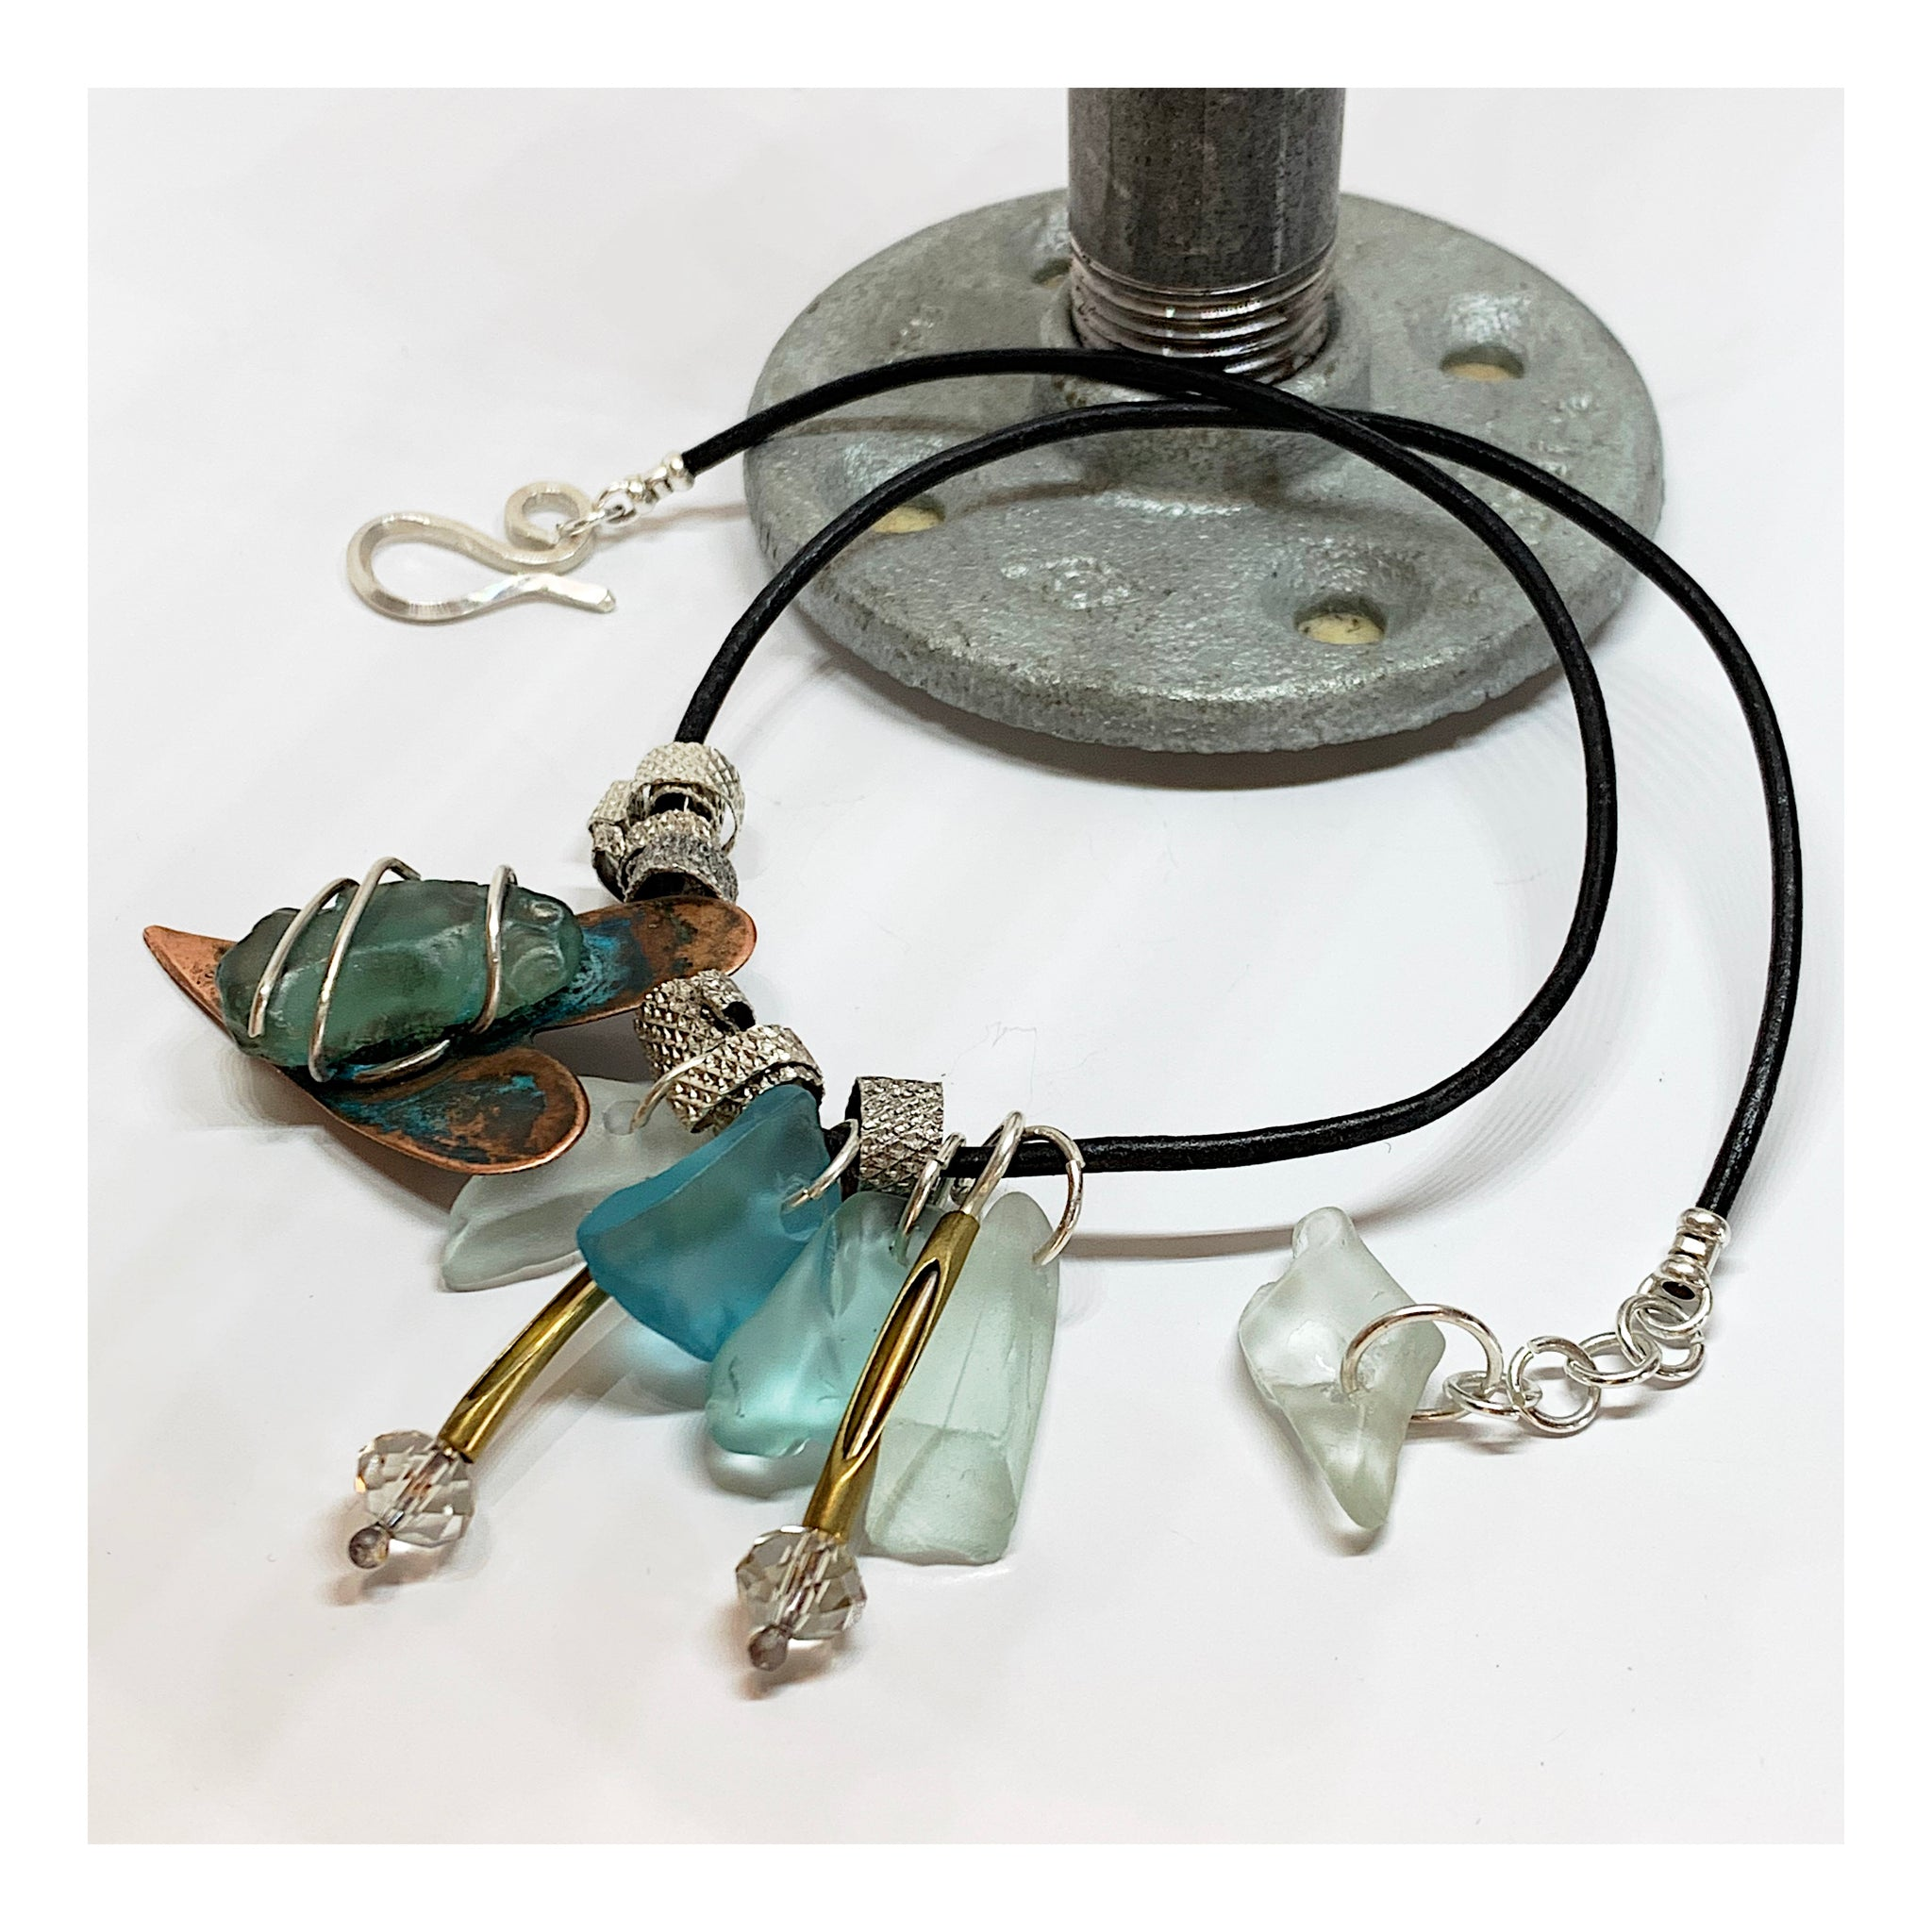 Bohemian Beach Glass Necklace - Unique Mixed Metals Jewelry